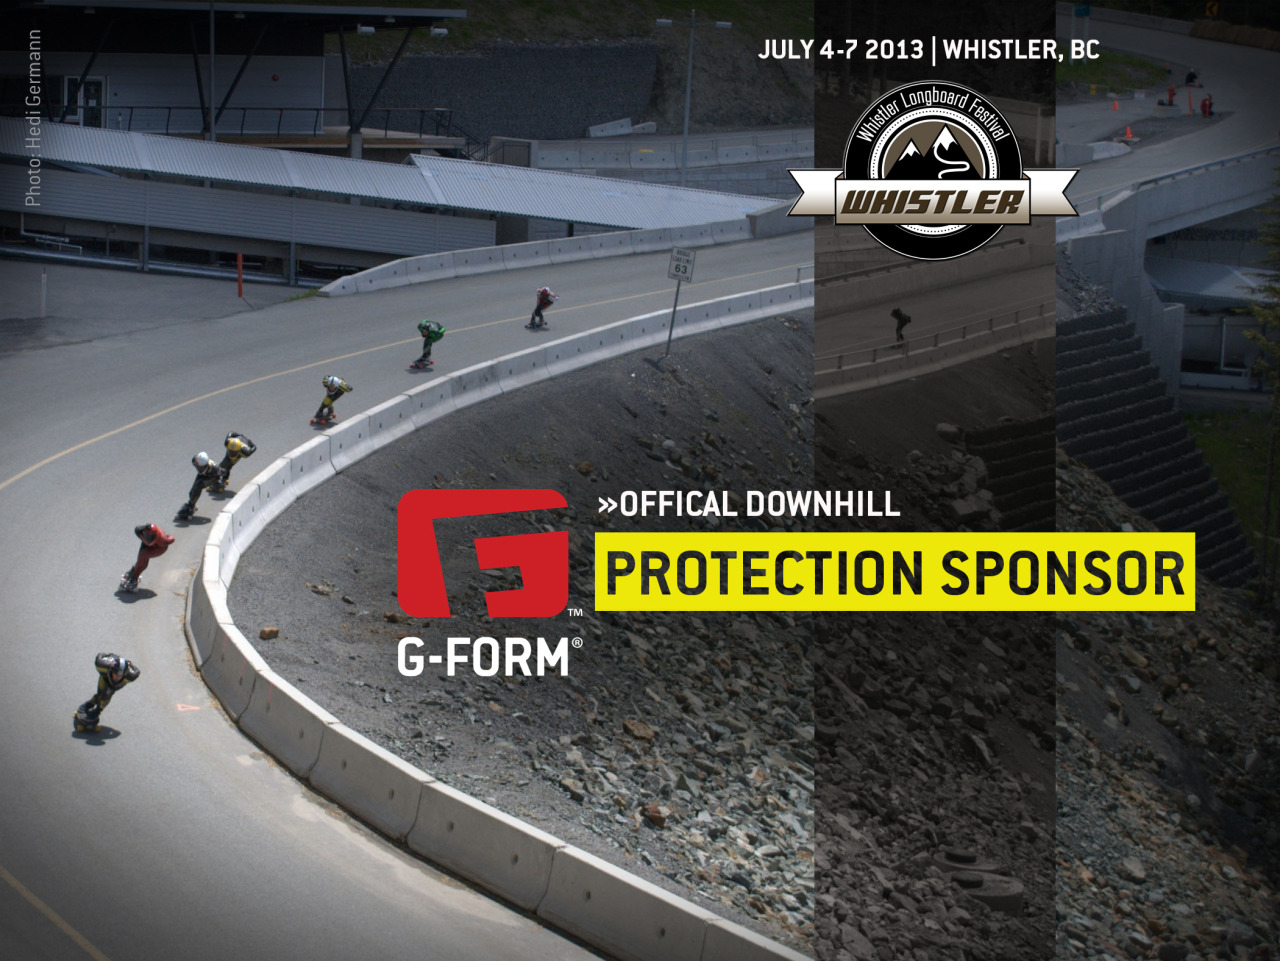 Whistler Longboard Festival - G-FORM PAD GIVEAWAY! Whistler, BC - Aug 4-7, 2013. Stoked to say G-Form is the Official Protection Sponsor of Whistler DH! More info here. The above can be found at http://g-form.com/skate/ in our events calendar.  GIVEAWAY INFO: If this post reaches 100 notes, G-Form will give away a set of pads randomly to one of the people who reblogs this image.An extra set will be given away for each increment of 100 notes after that.   After you have reblogged, you MUST ENTER HERE (<click) to be in the running.. So get to reblogging mateys!!  -MG